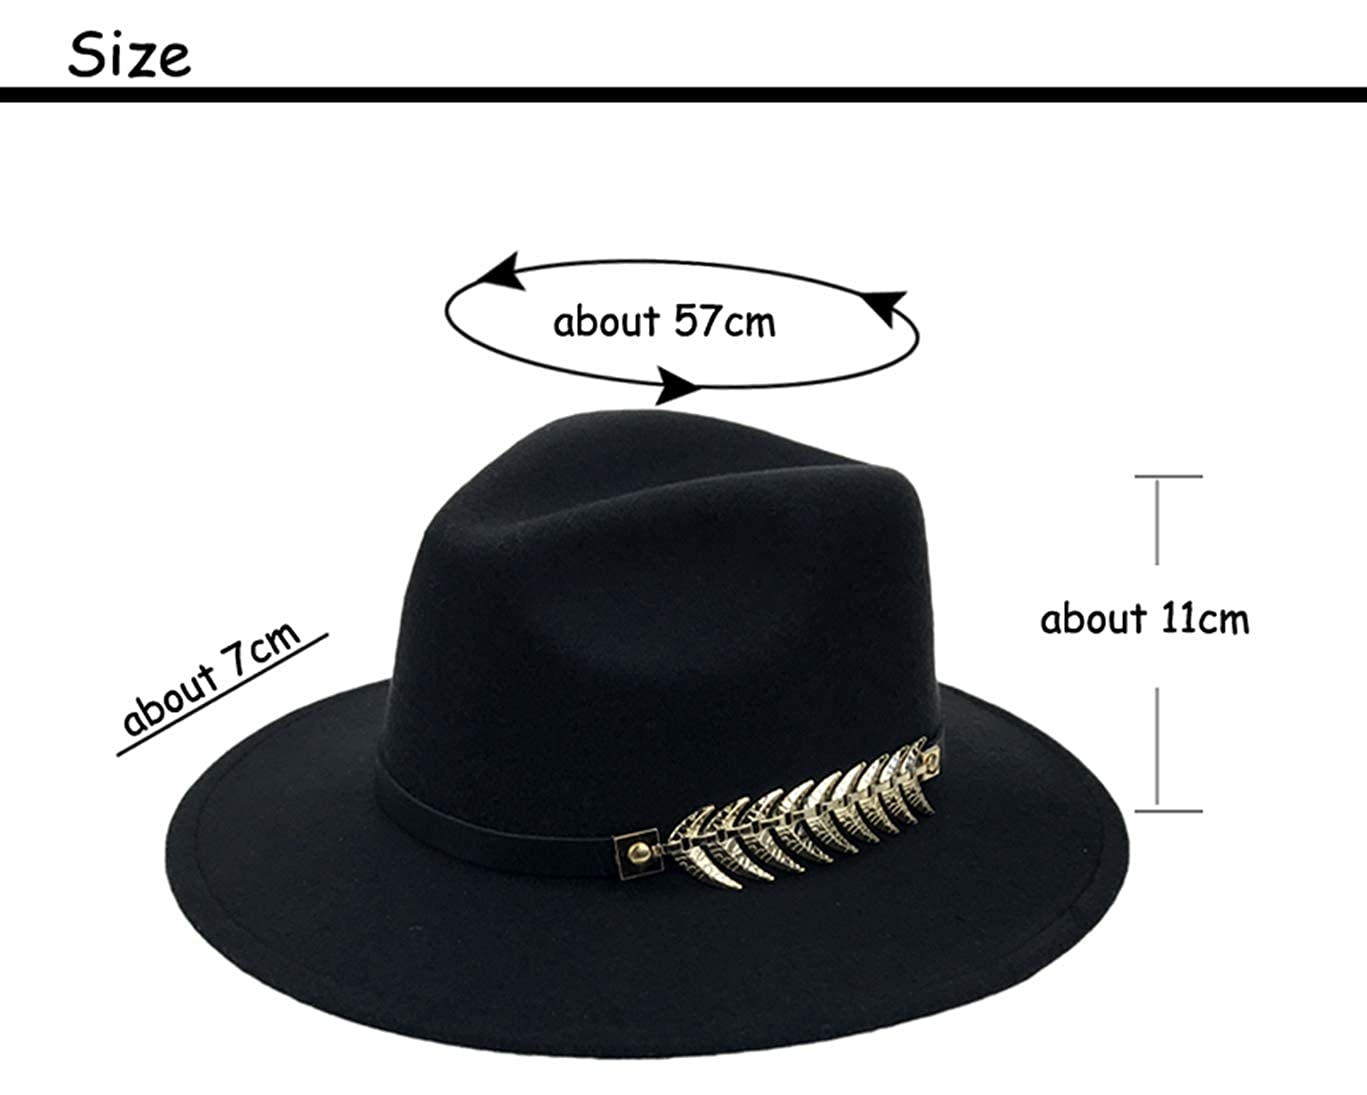 Wool Felt Fedora Hats for Men Women Unisex Classic Vintage Wide Brim Trilby Panama Jazz Hat with Band